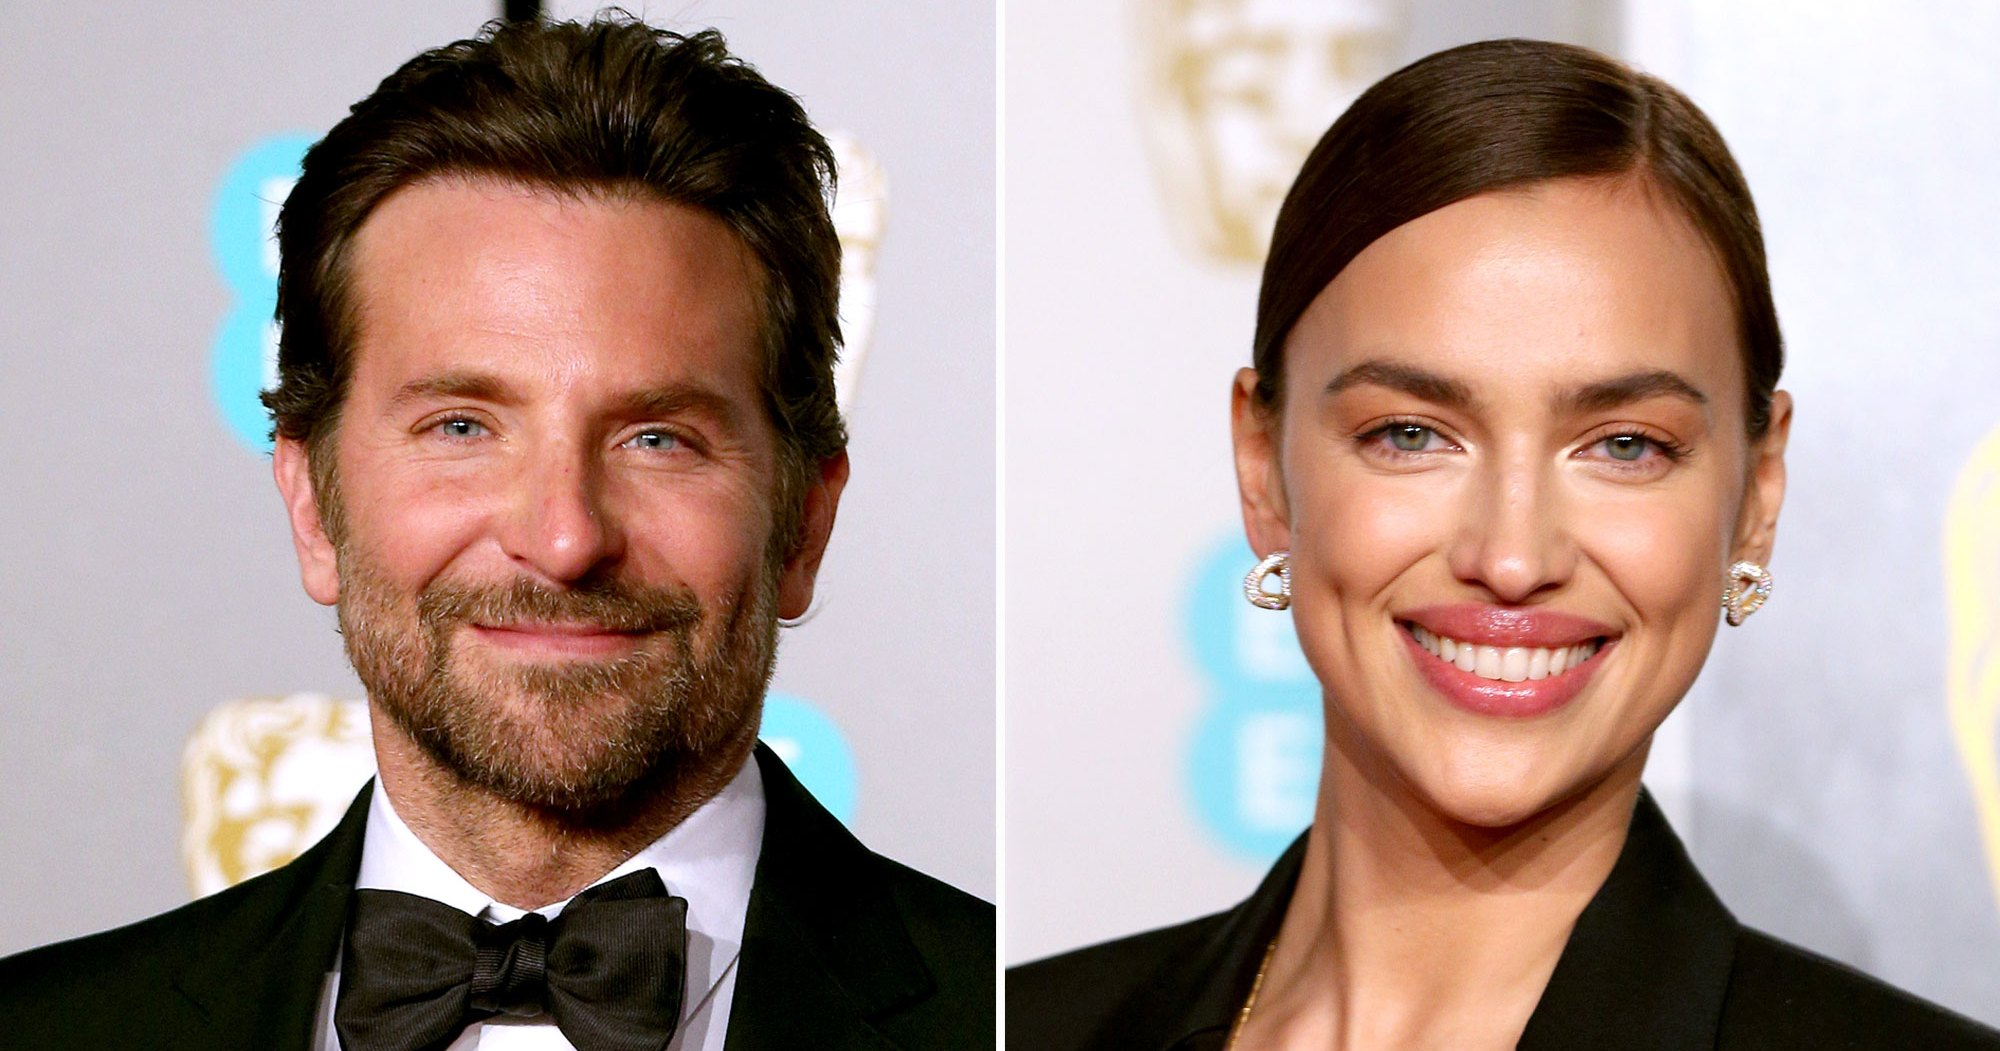 Bradley Cooper Thanks GF Irina Shayk at BAFTAs for 'Putting Up With Me'